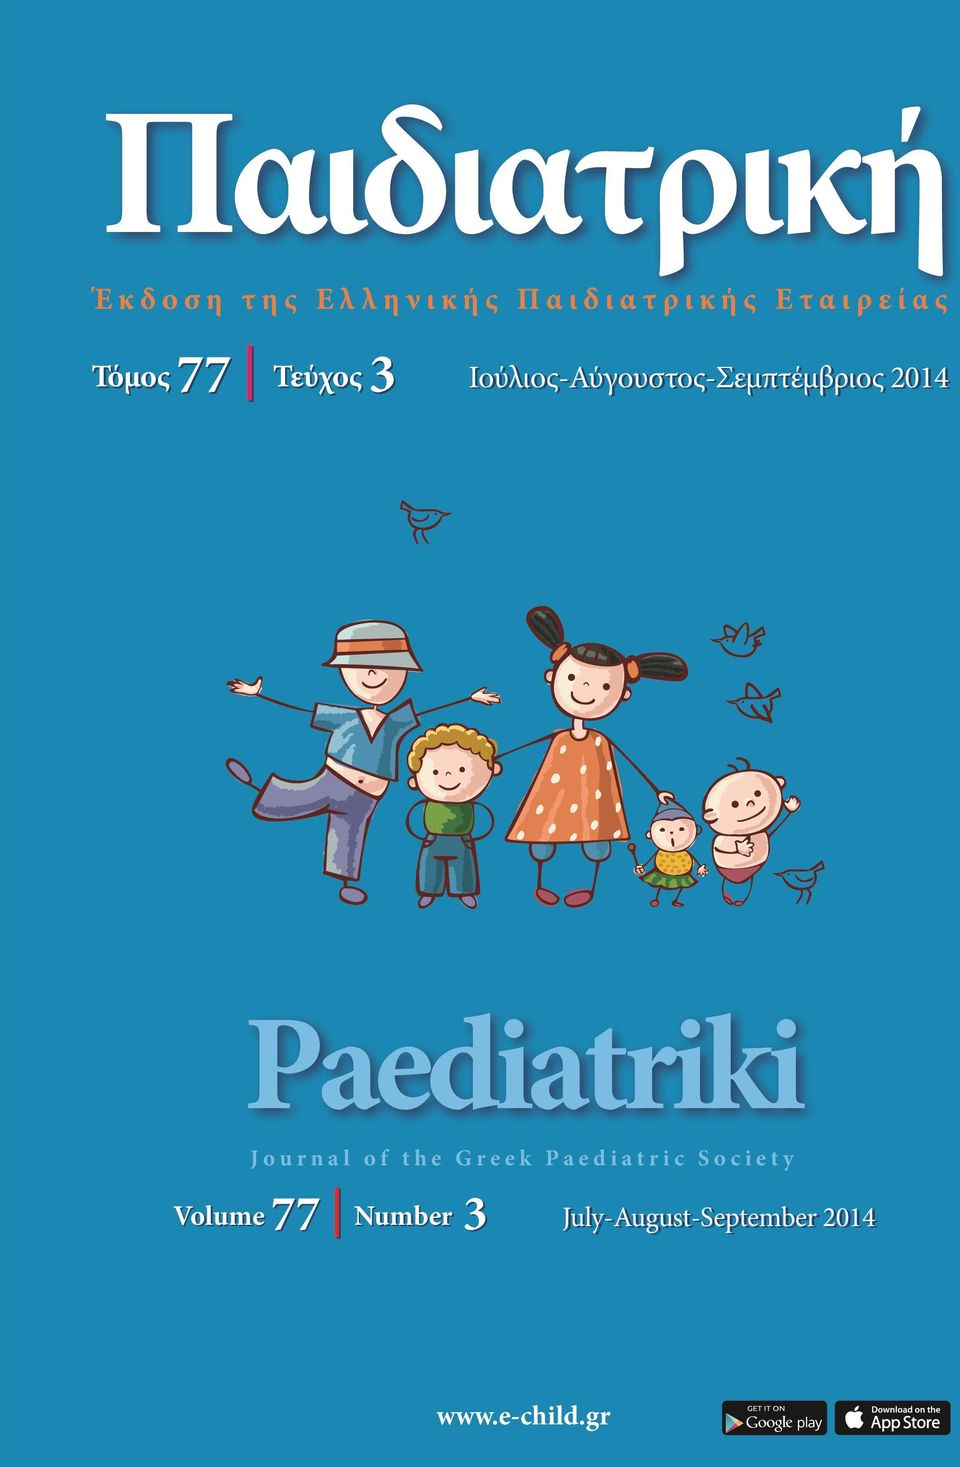 Paediatriki Journal of the Greek Paediatric Society